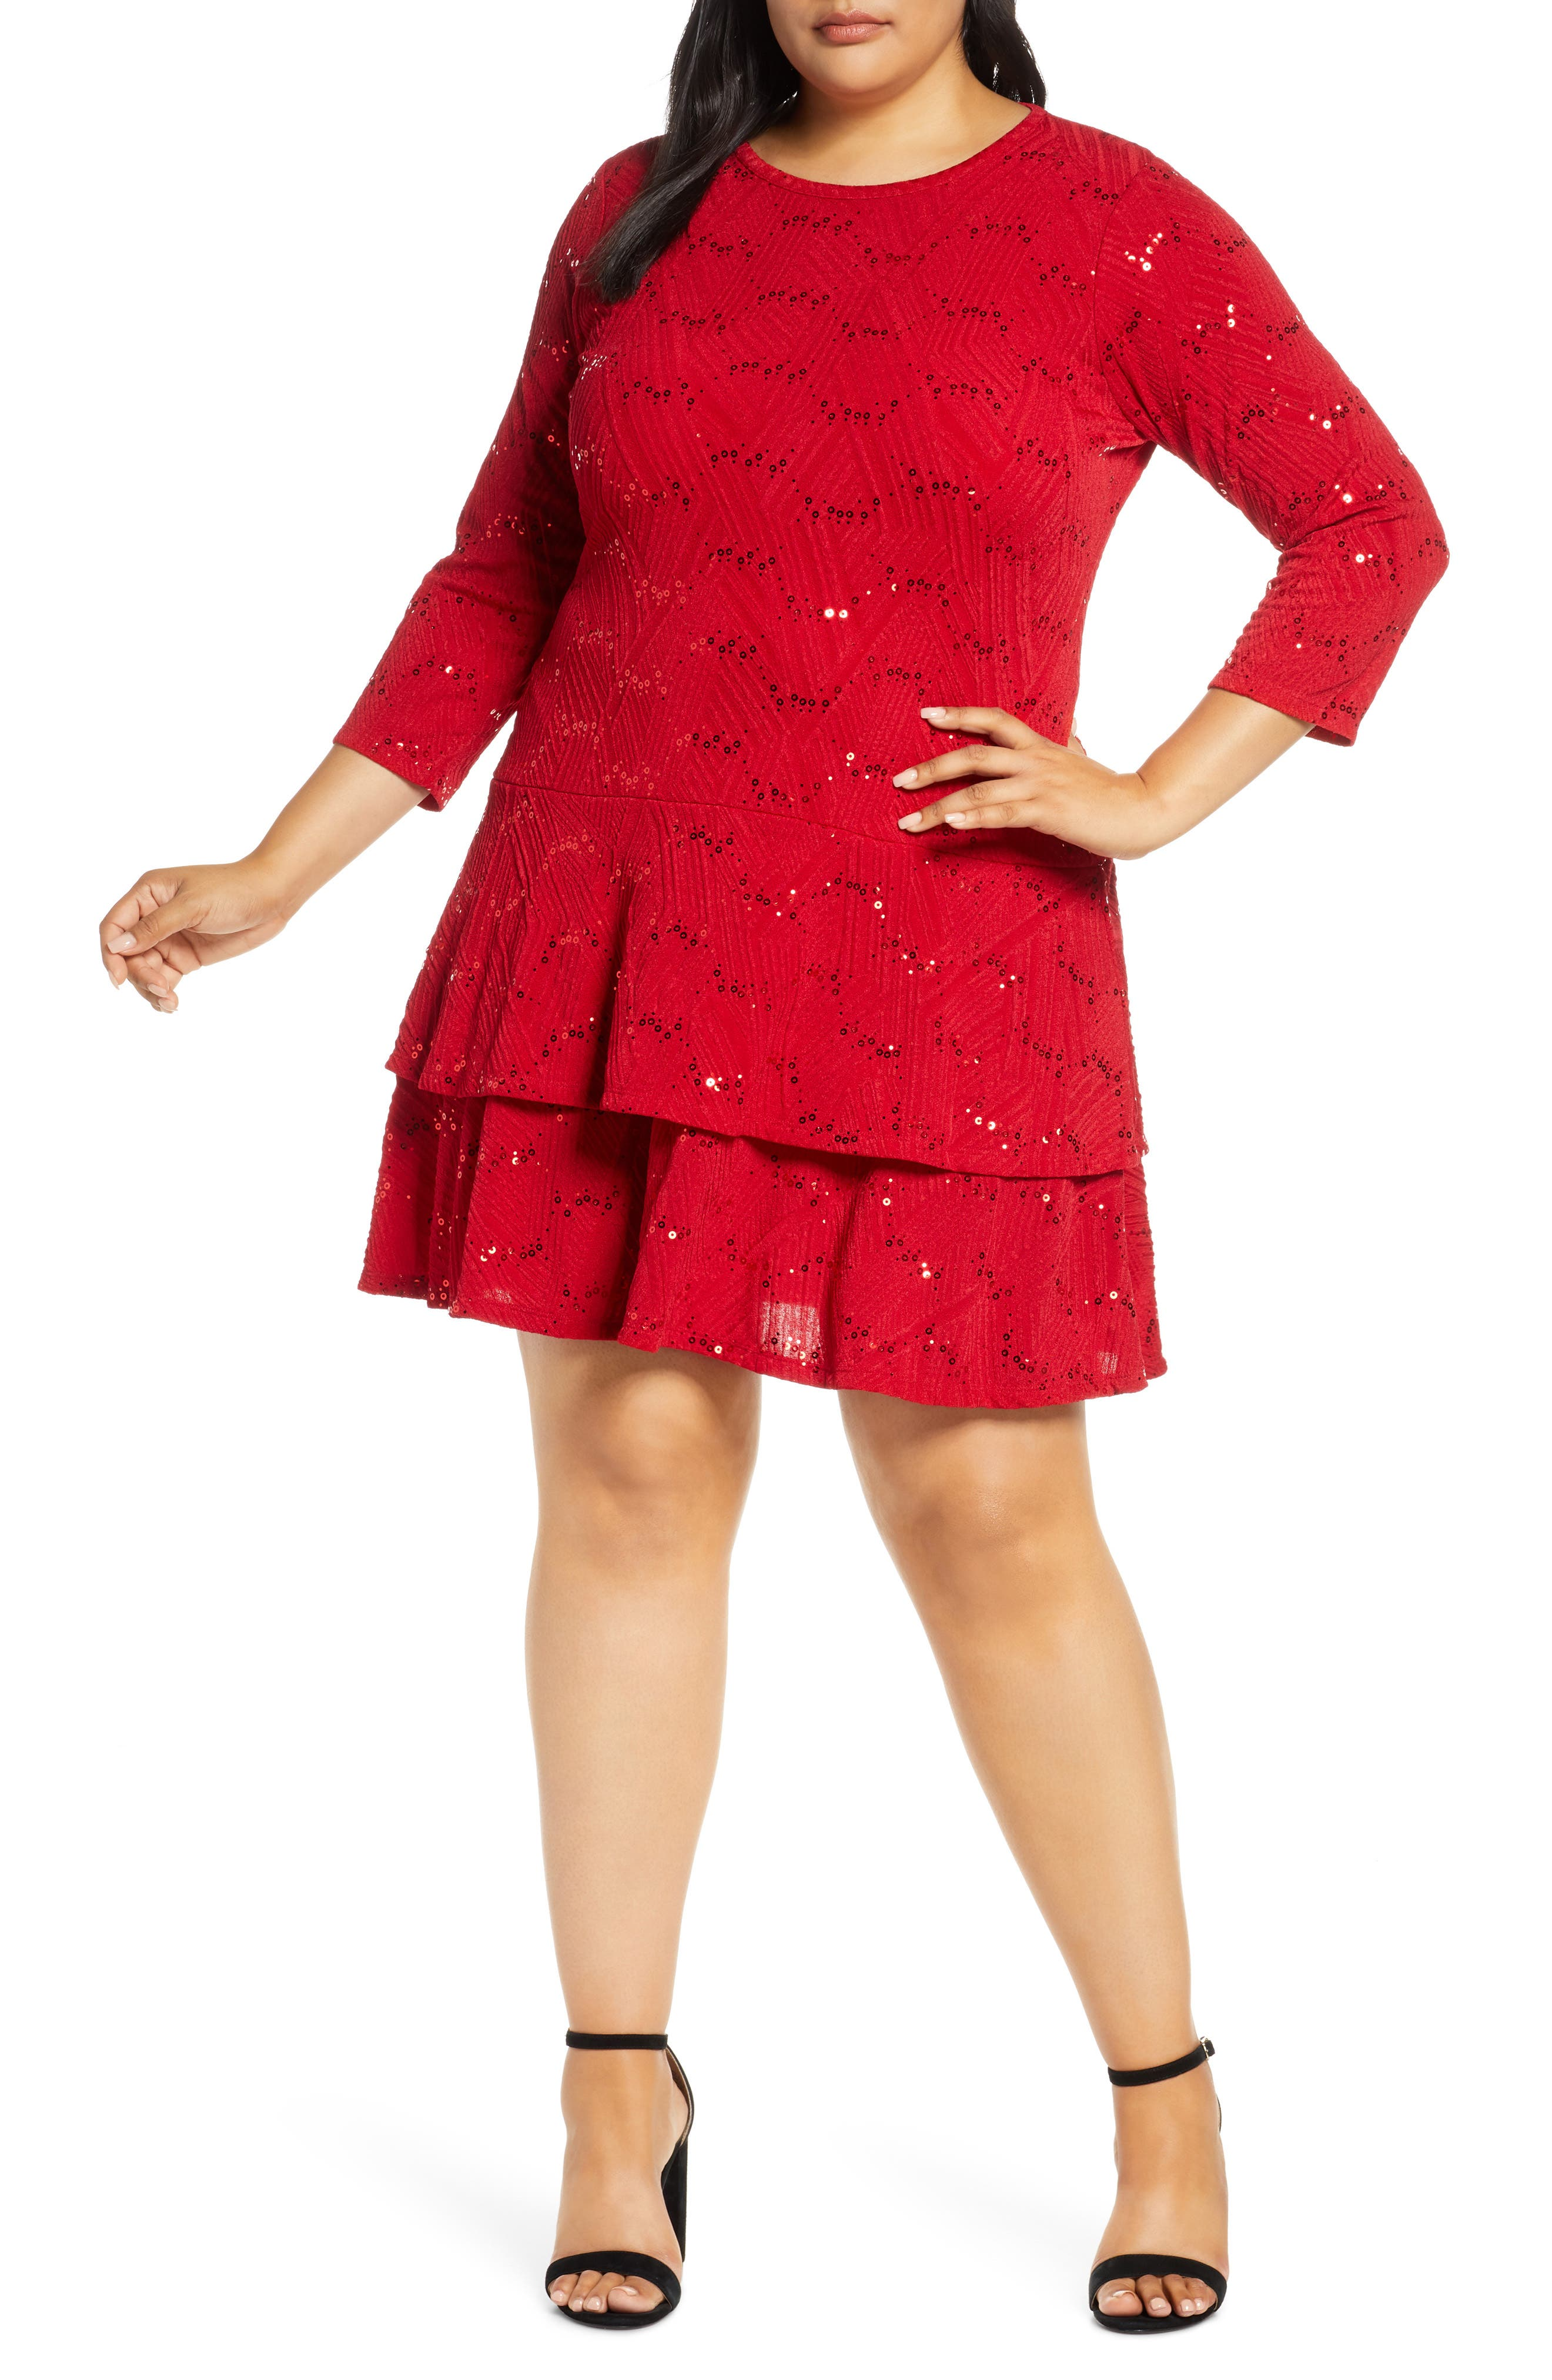 Vintage 1920s Dresses – Where to Buy Plus Size Womens Michael Michael Kors Sequin Jacquard Tiered Dress Size 1X - Red $140.00 AT vintagedancer.com